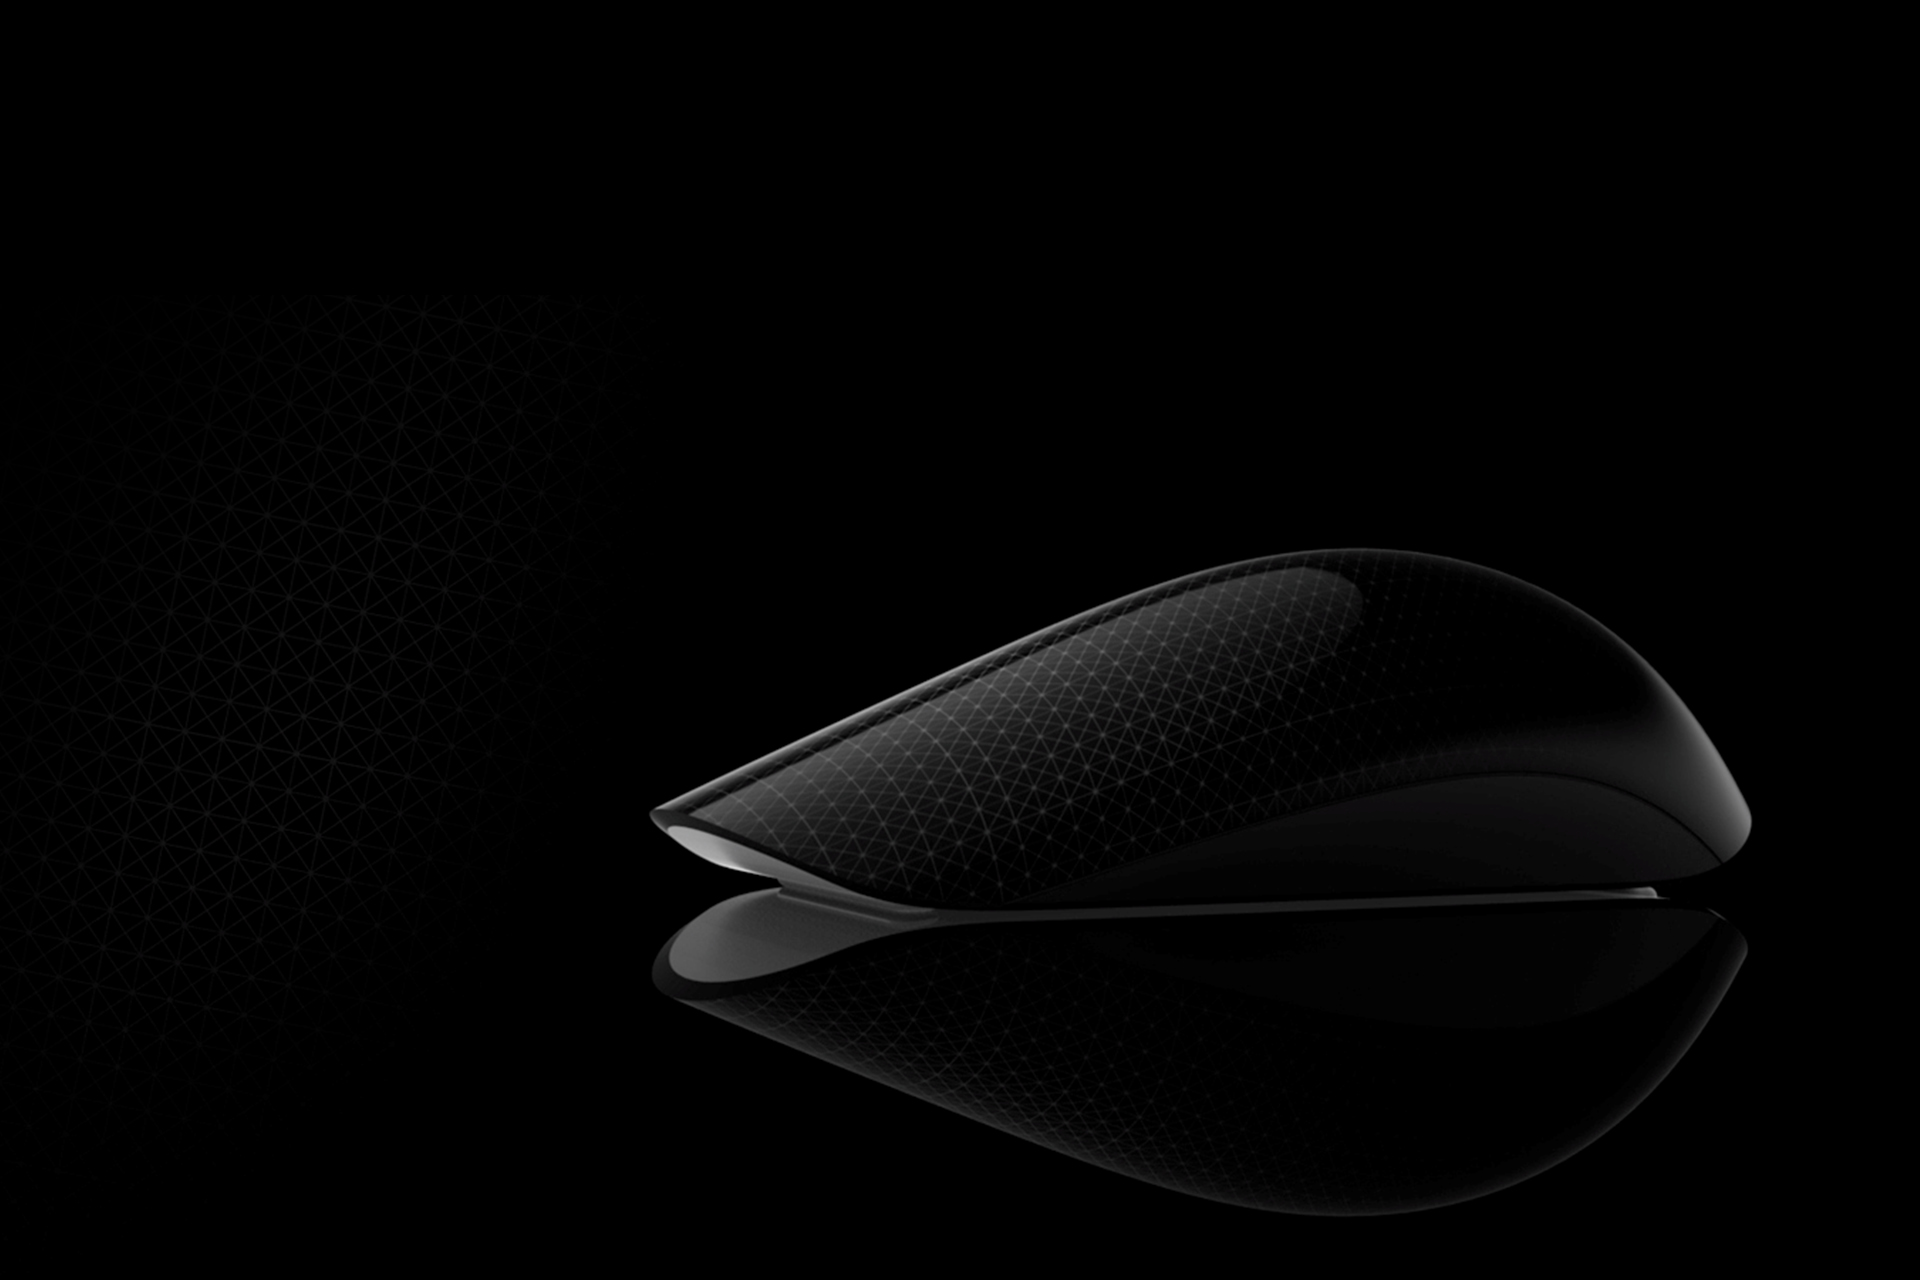 Microsoft Touch Mouse render